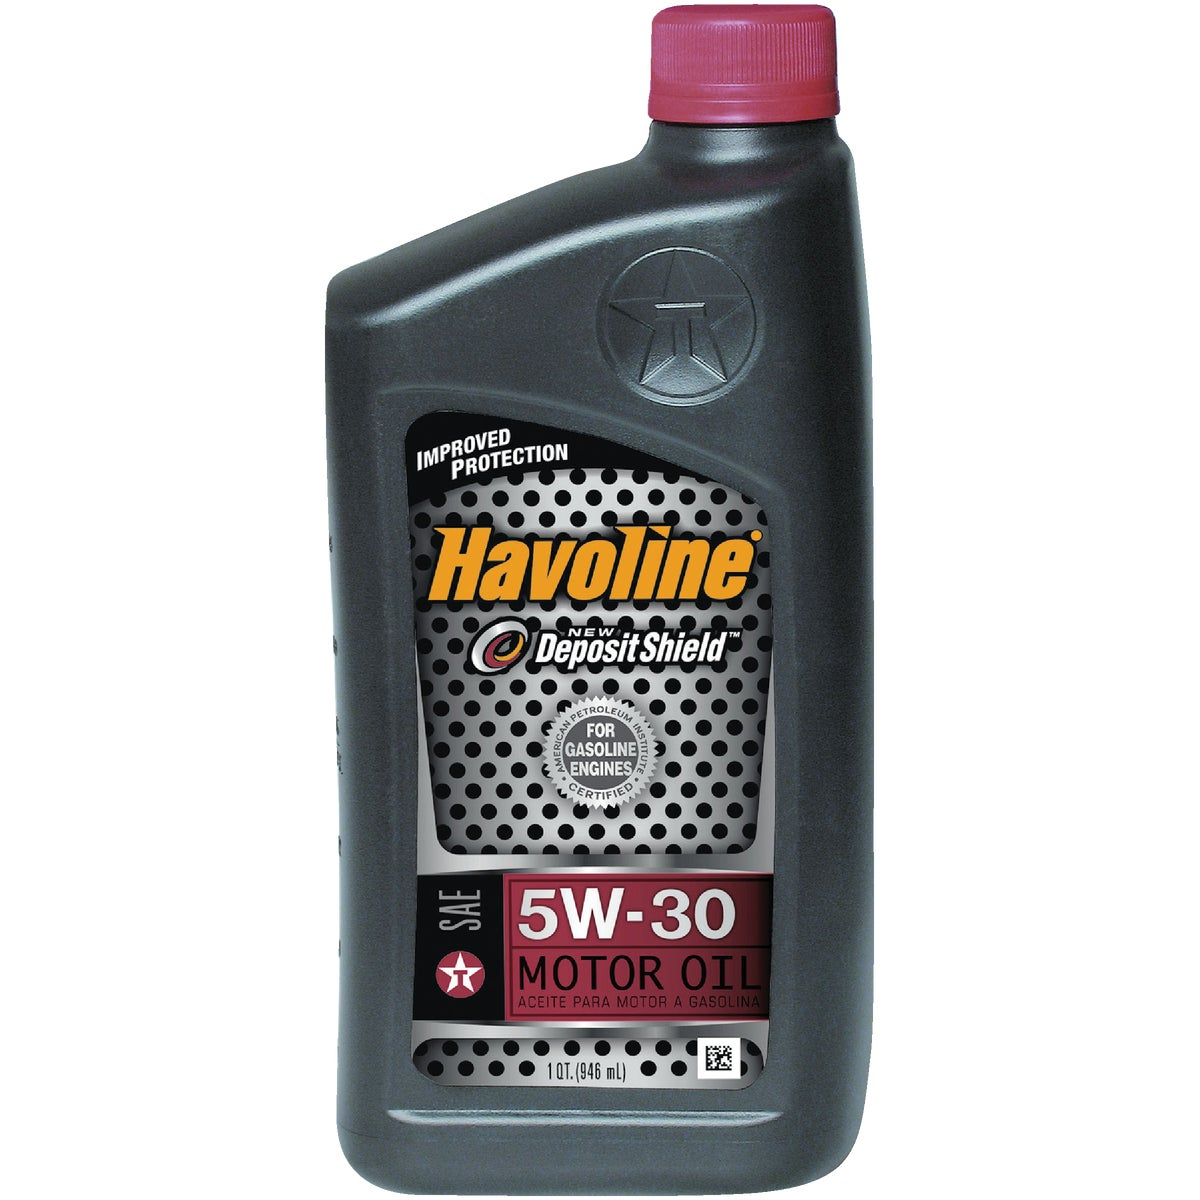 HAVOLINE 5W30 MOTOR OIL - HAVO223394 by Twinco Romax